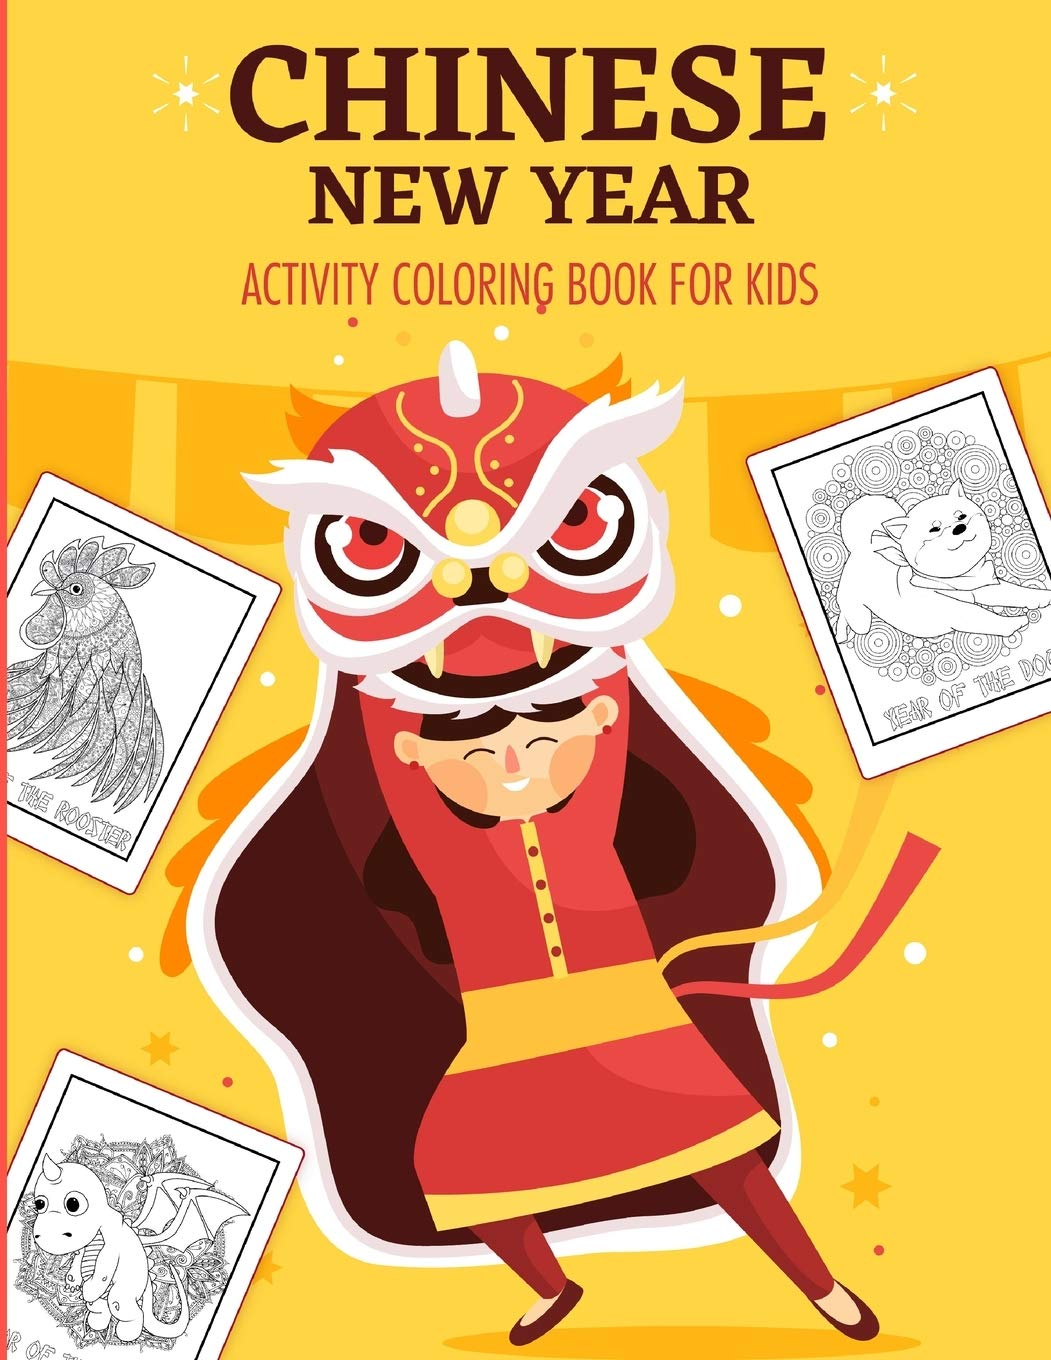 Chinese New Year Activity Coloring Book For Kids 2021 Year Of The Ox Juvenile Activity Book For Kids Ages 3 10 Spring Festival Larson Patricia 9781649304032 Amazon Com Books